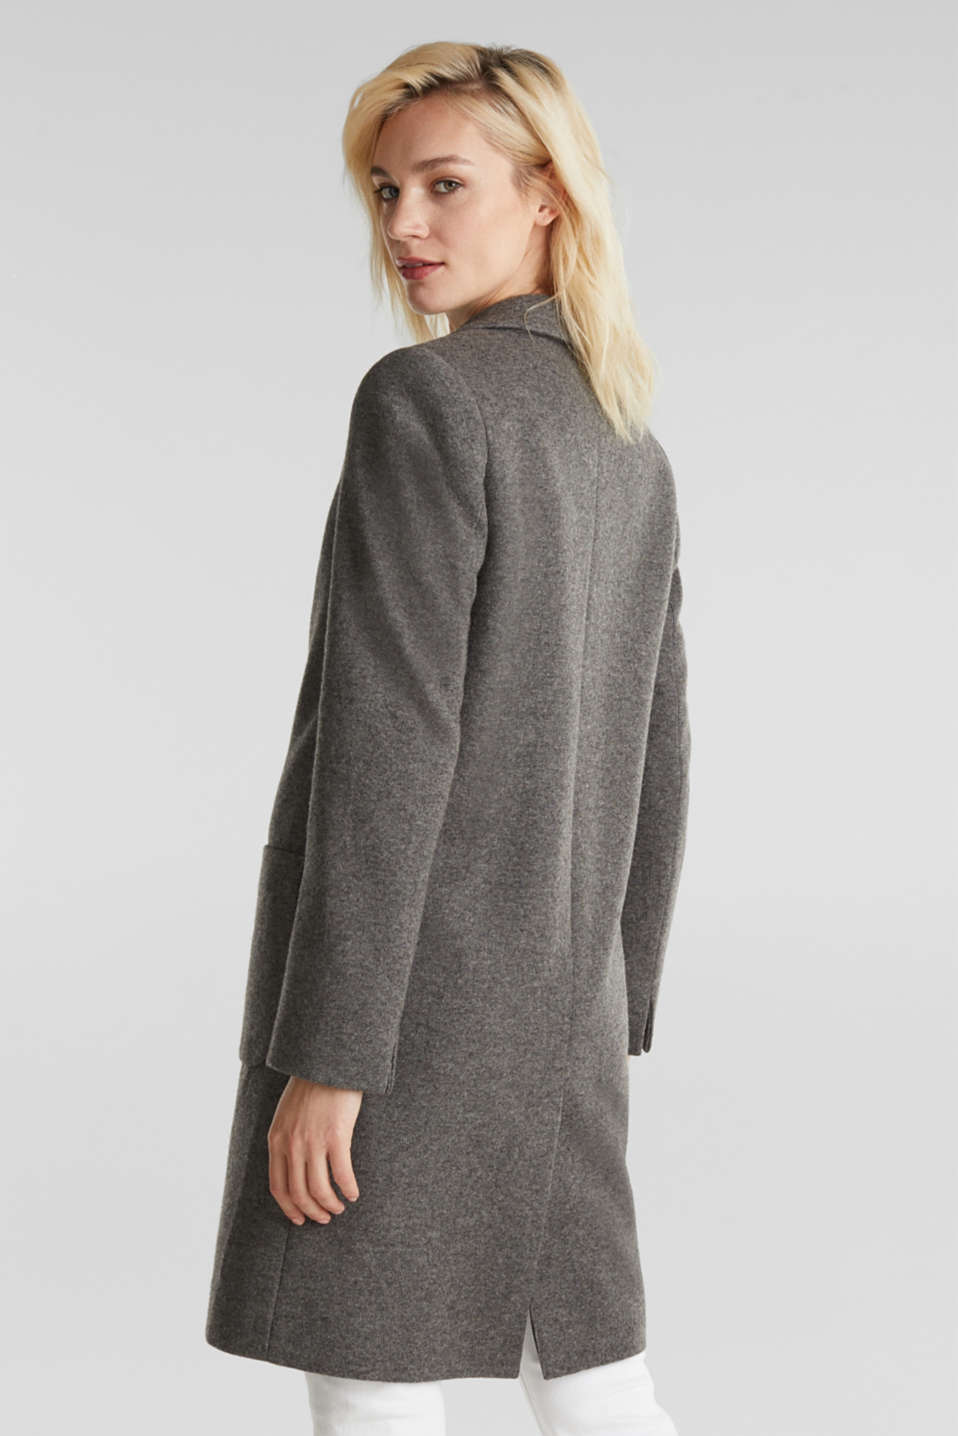 Made of blended wool: Coat in a knit look, DARK GREY 5, detail image number 3